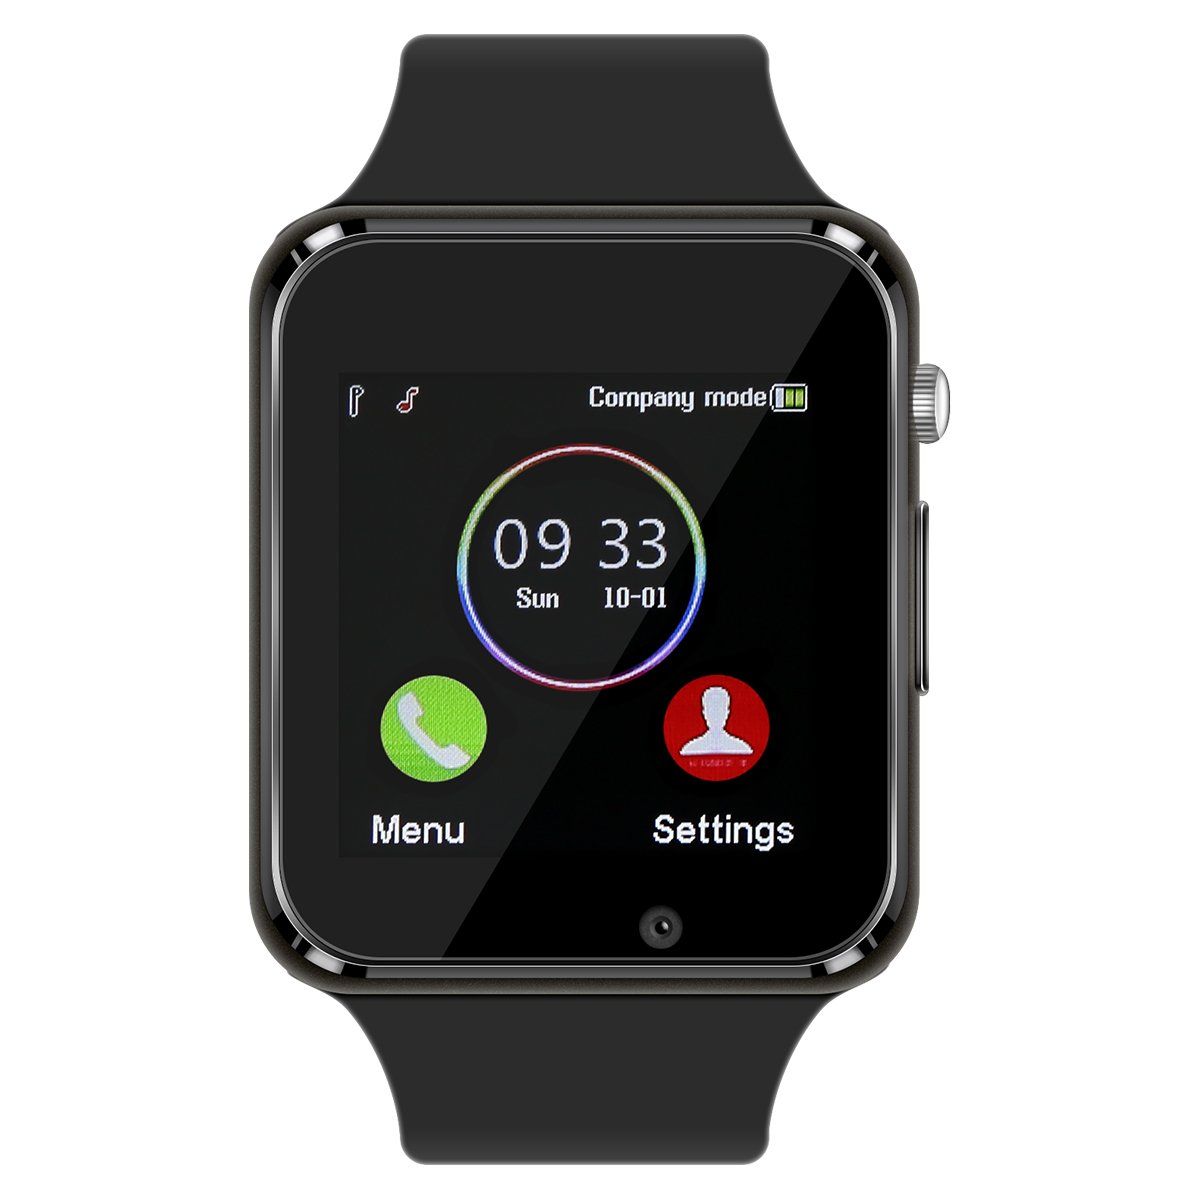 Smart Watch - 321OU Touch Screen Bluetooth Smart Wrist Watch Smartwatch Phone Fitness Tracker with SIM SD Card Slot Camera Pedometer for iPhone iOS Samsung LG Android for Women Men Kids (Black) by 321OU (Image #2)